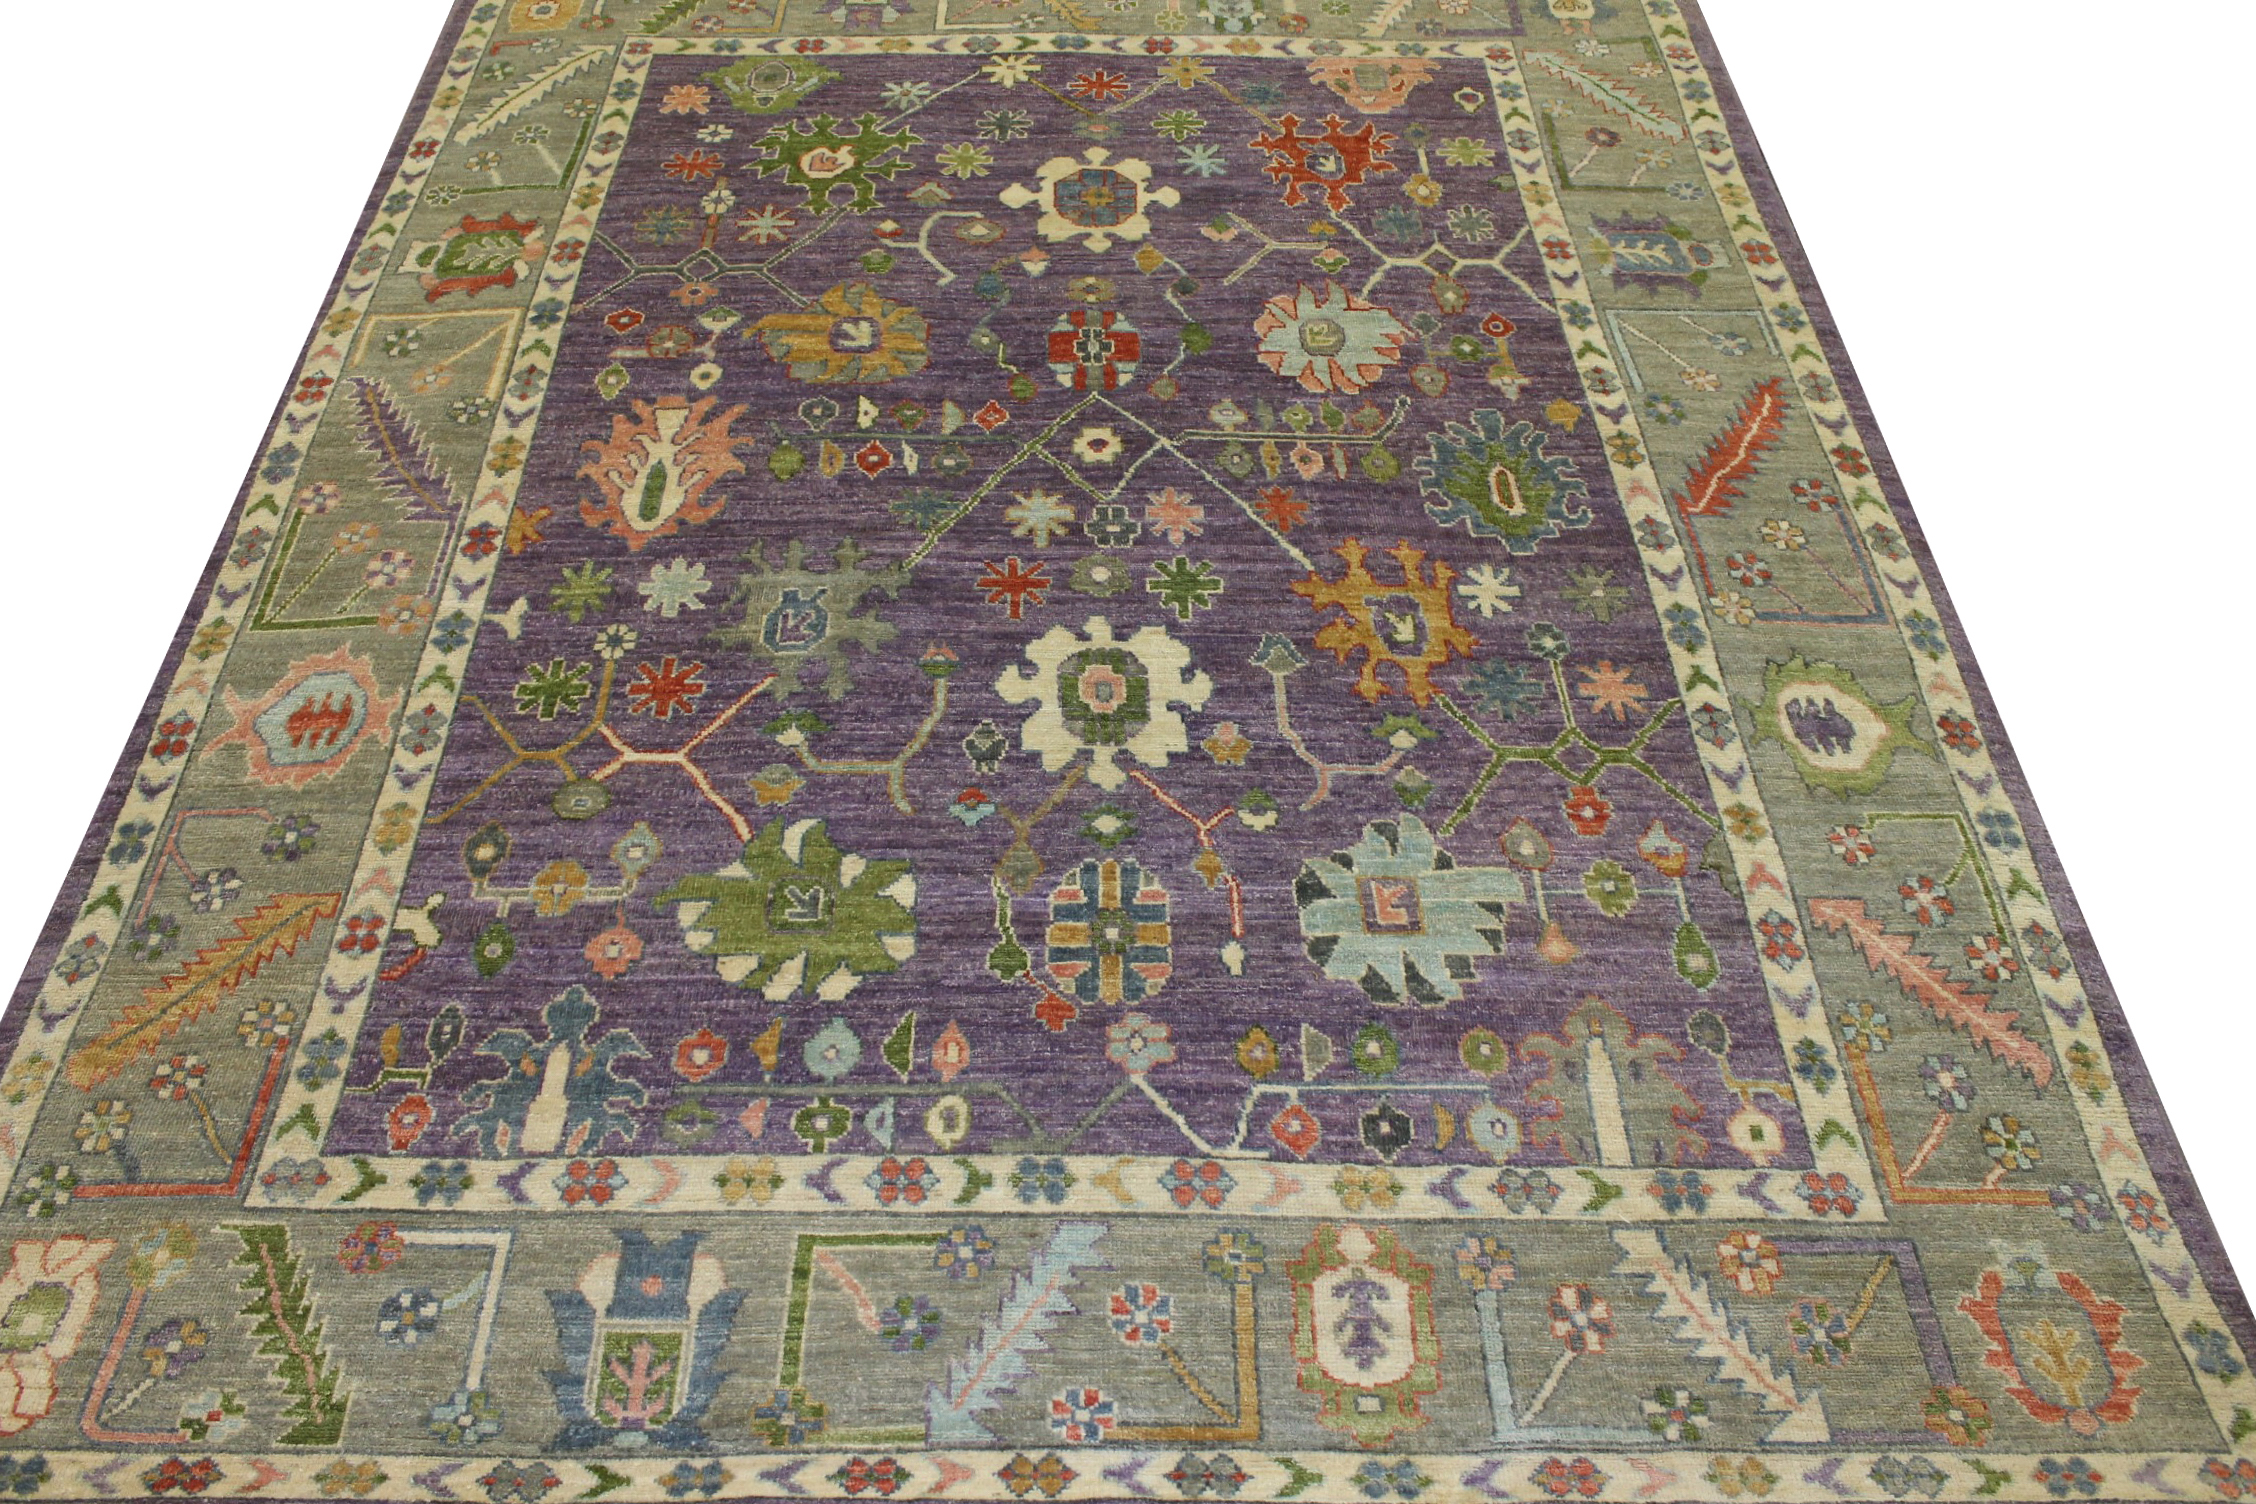 8x10  Hand Knotted Wool Area Rug - MR022917